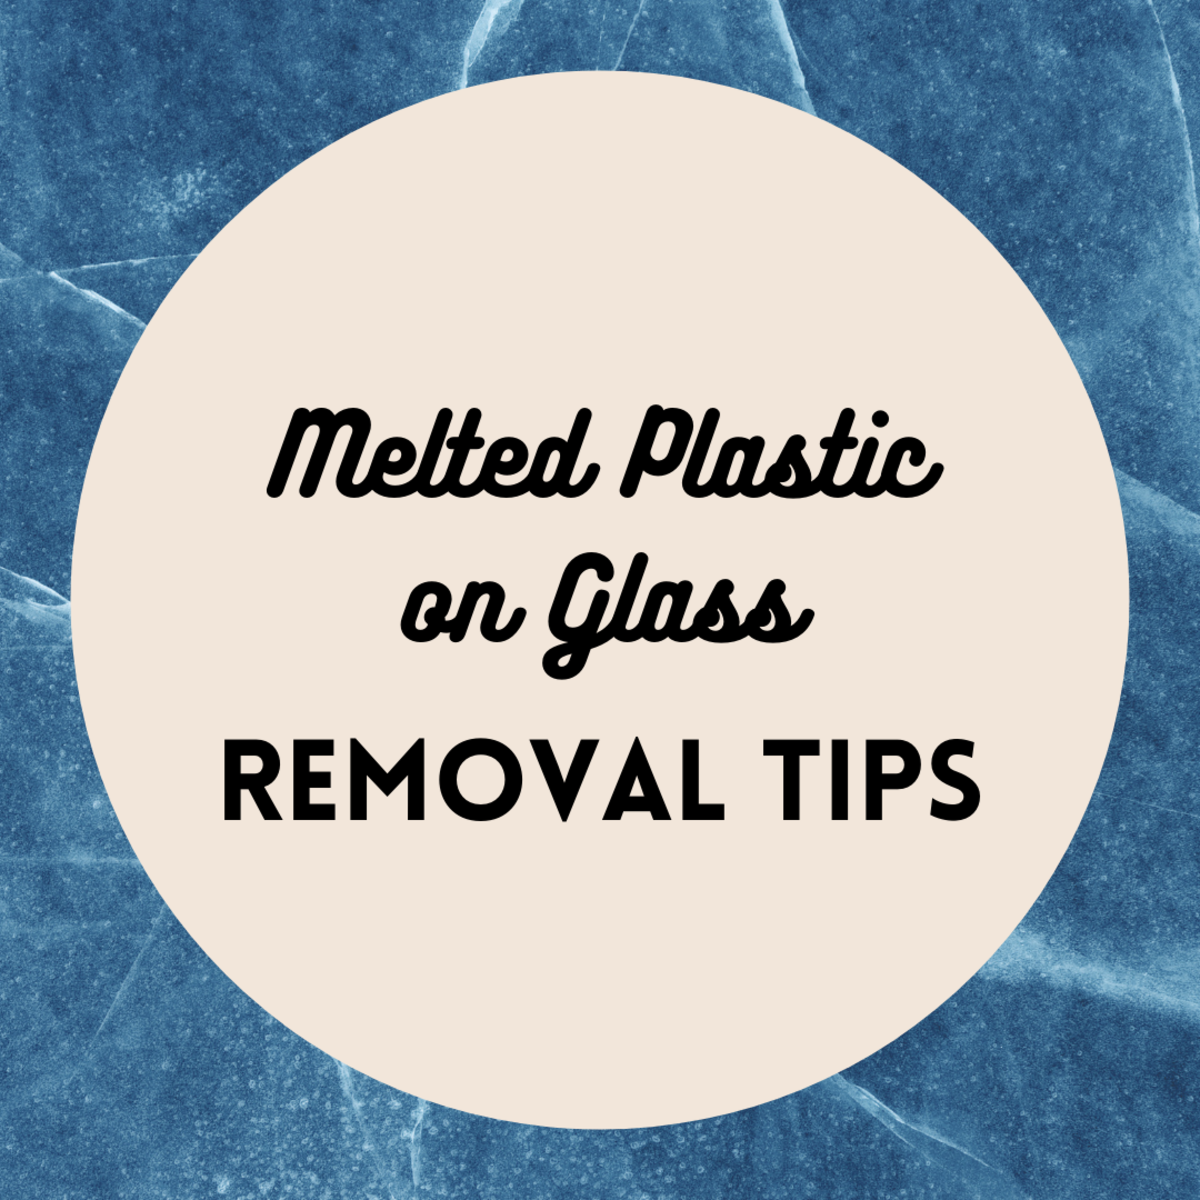 How to Remove Melted Plastic or Nylon From a Glass Surface